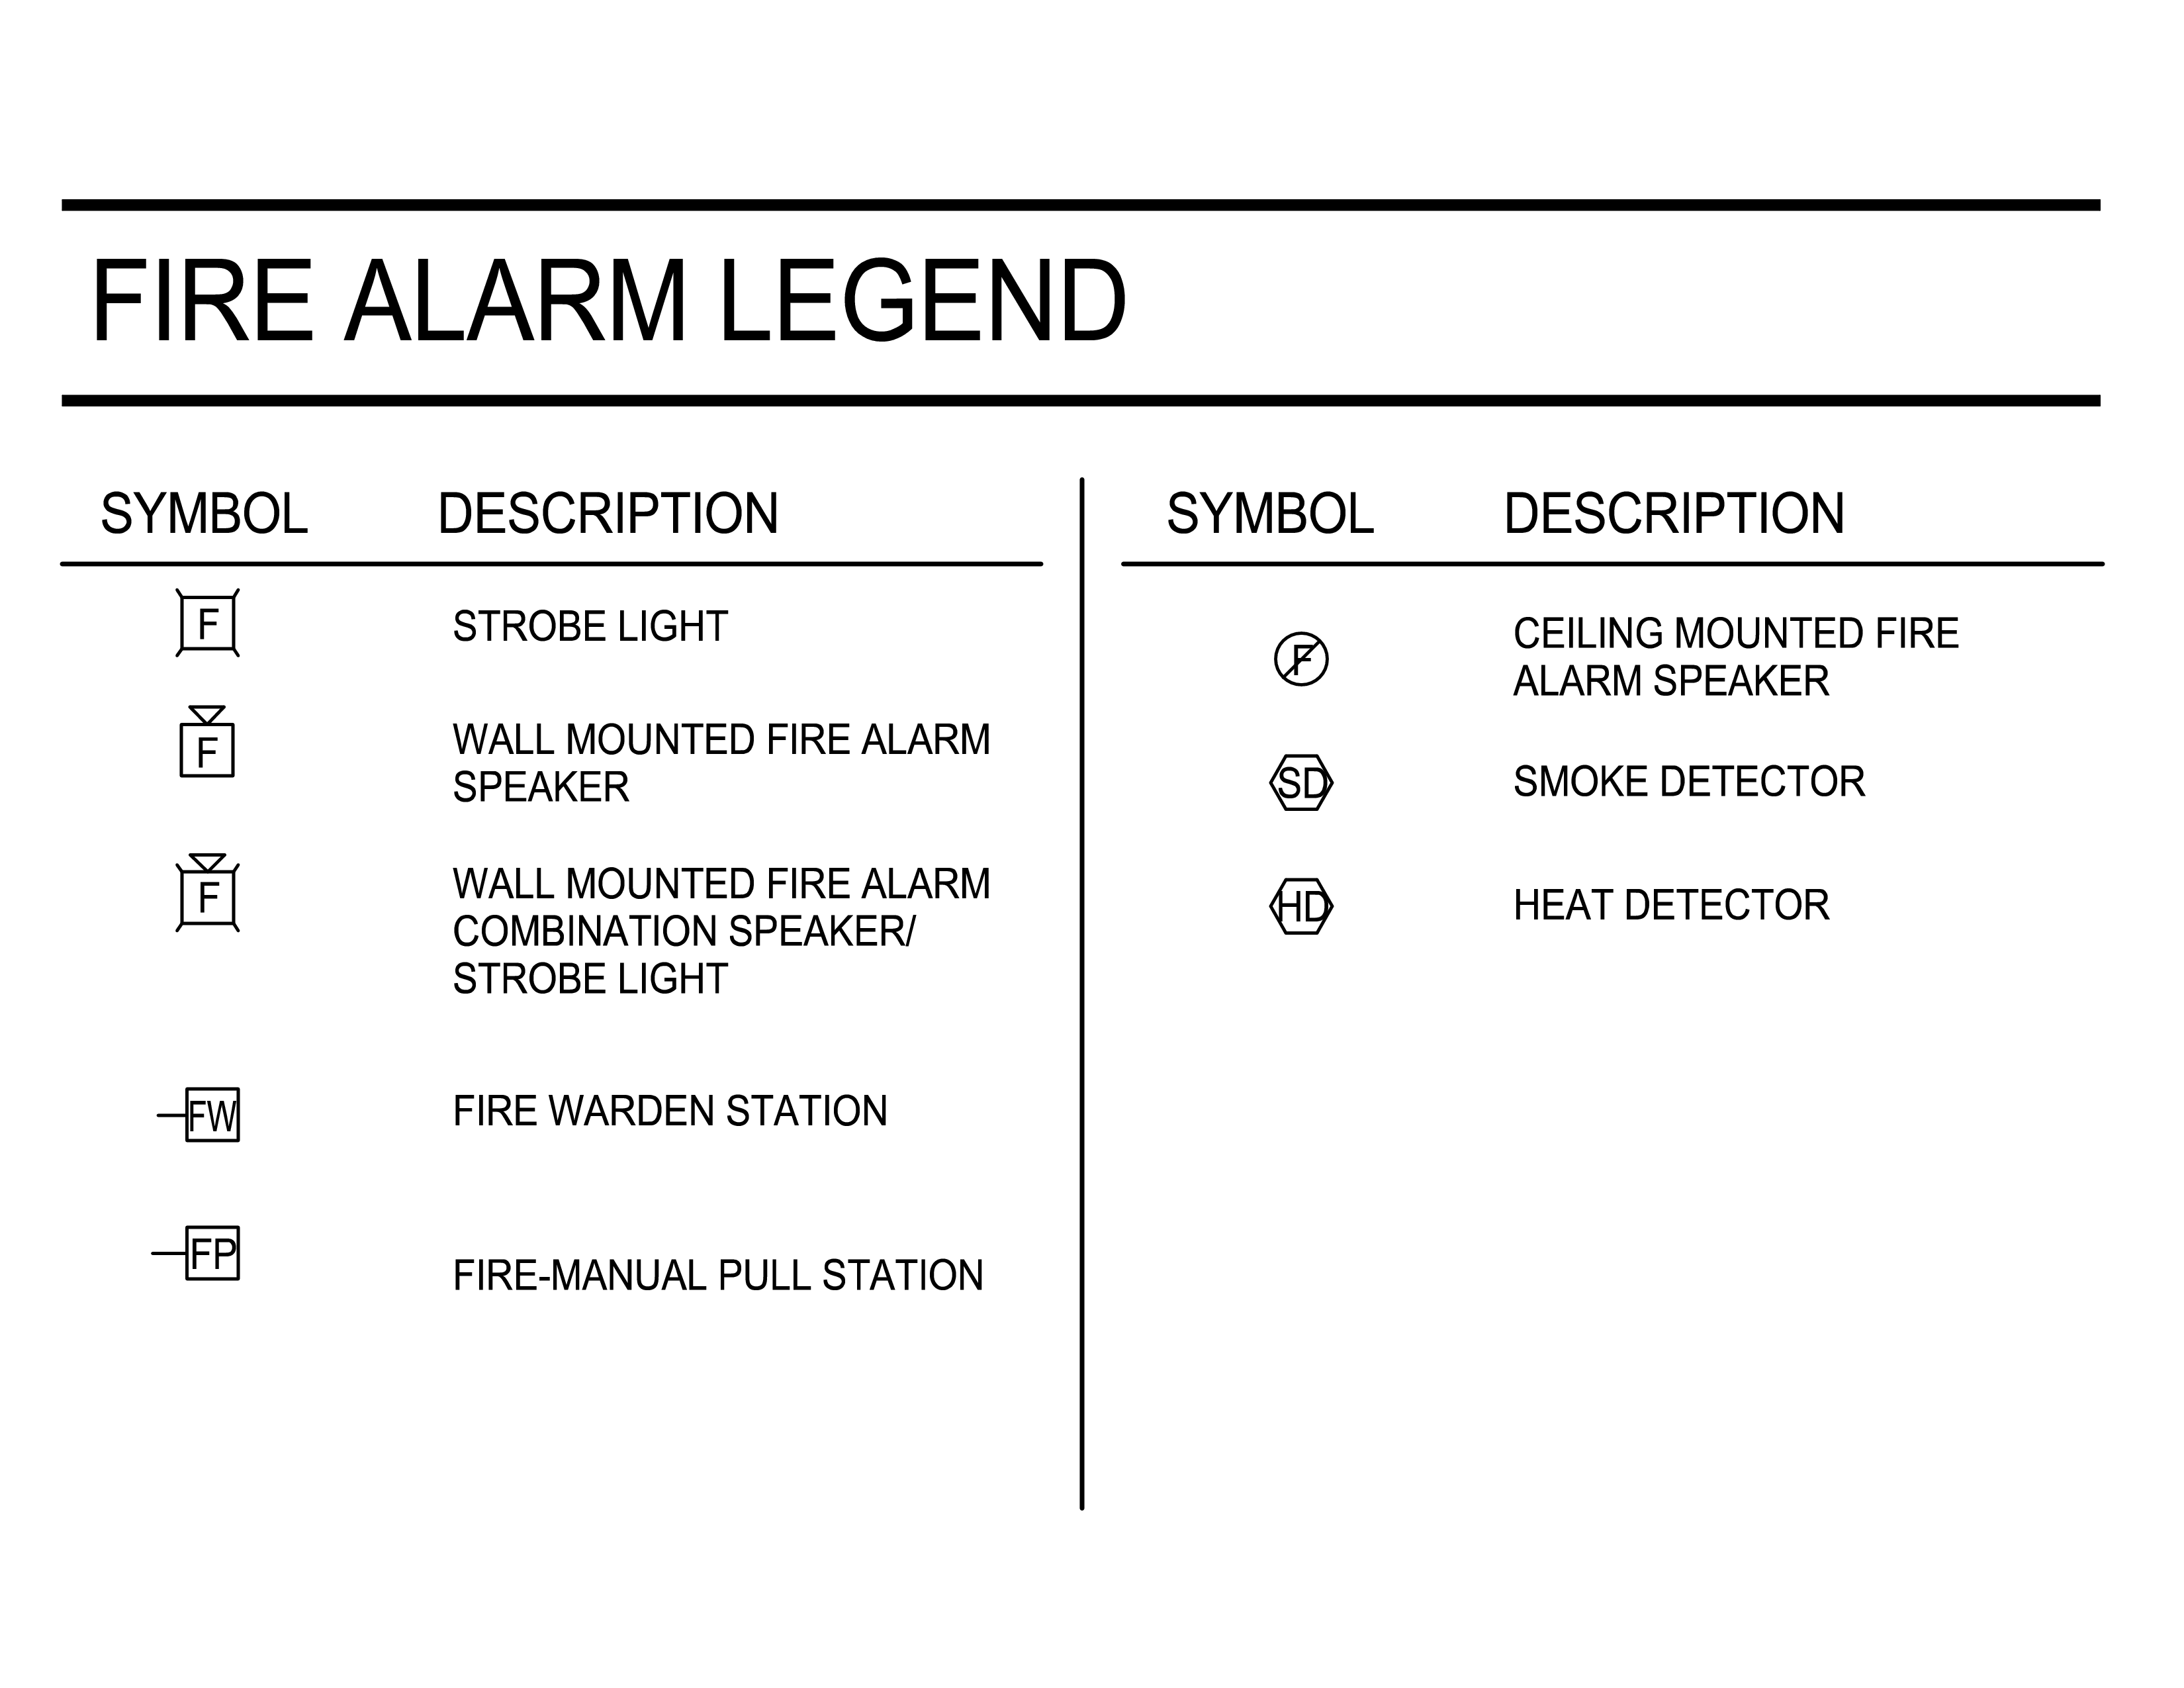 small resolution of fire alarm legend architecture details boarding pass